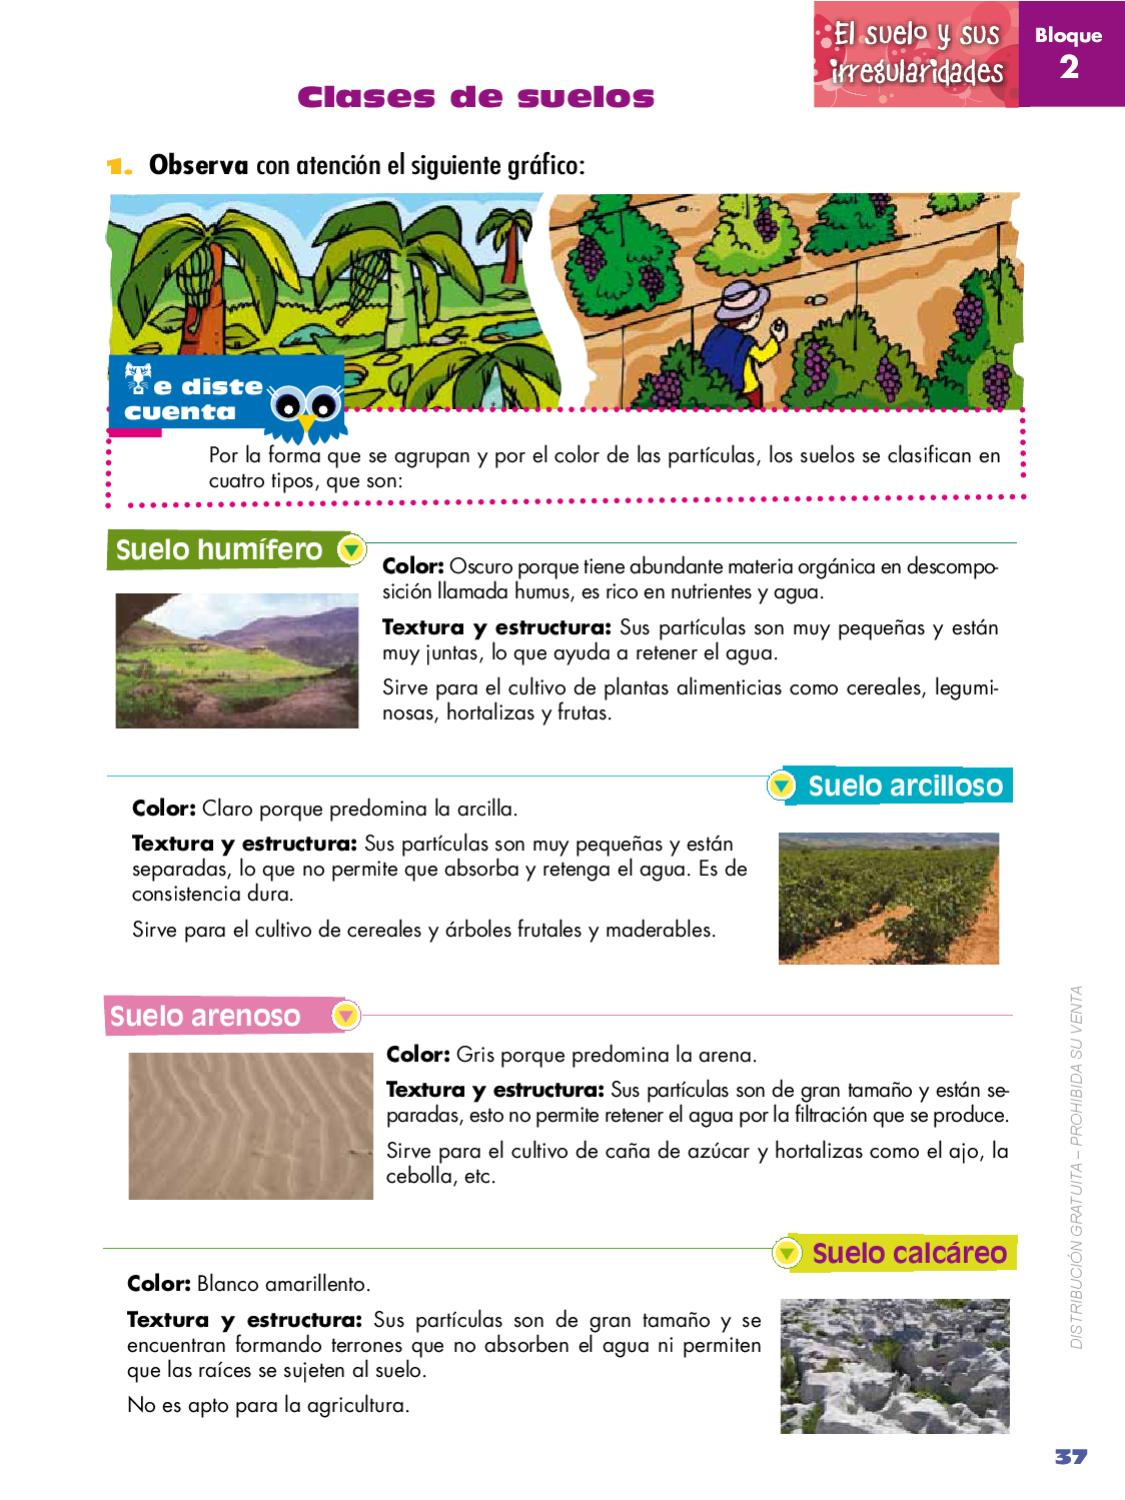 Naturales 5 by quito ecuador issuu for Suelos y tipos de suelos